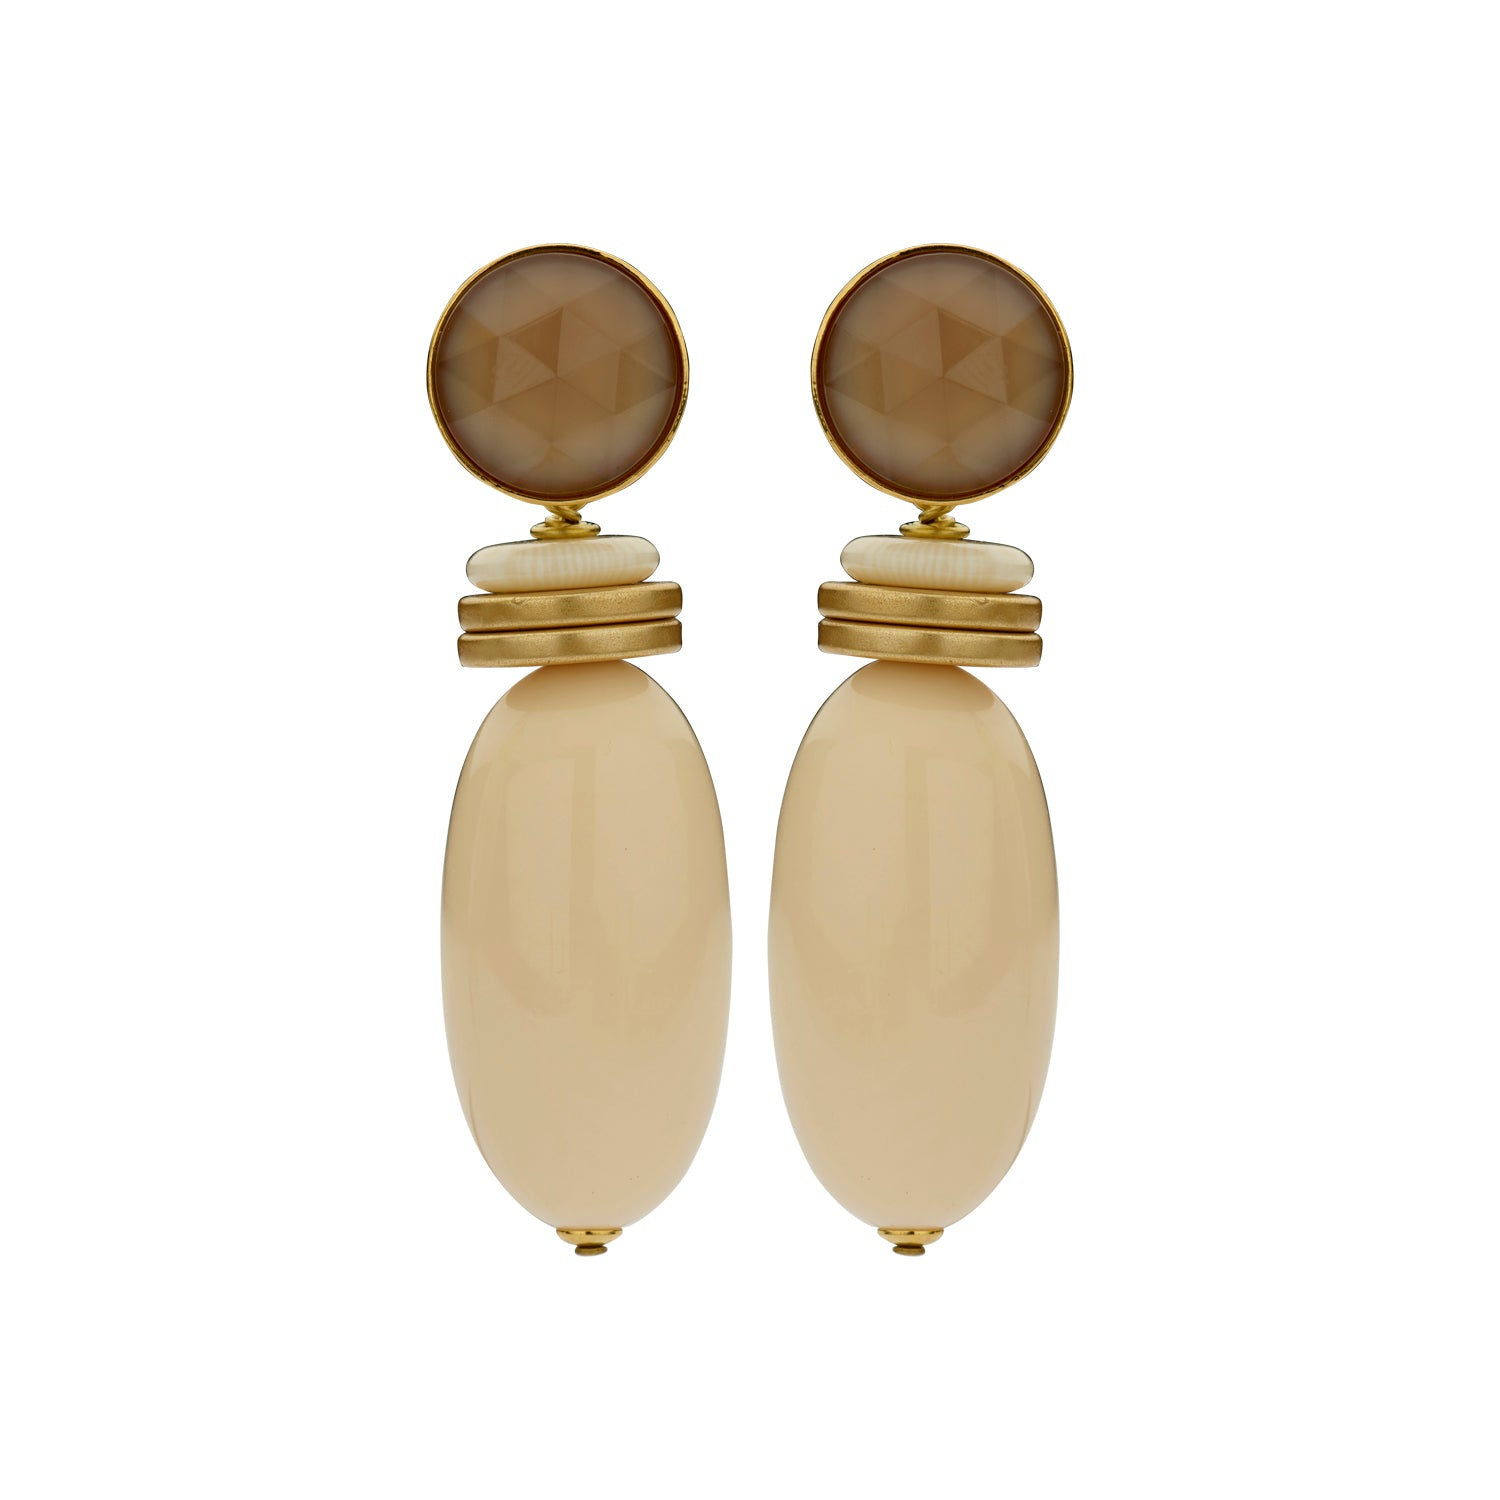 Nanou bold ivory earrings - Souvenirs de Pomme